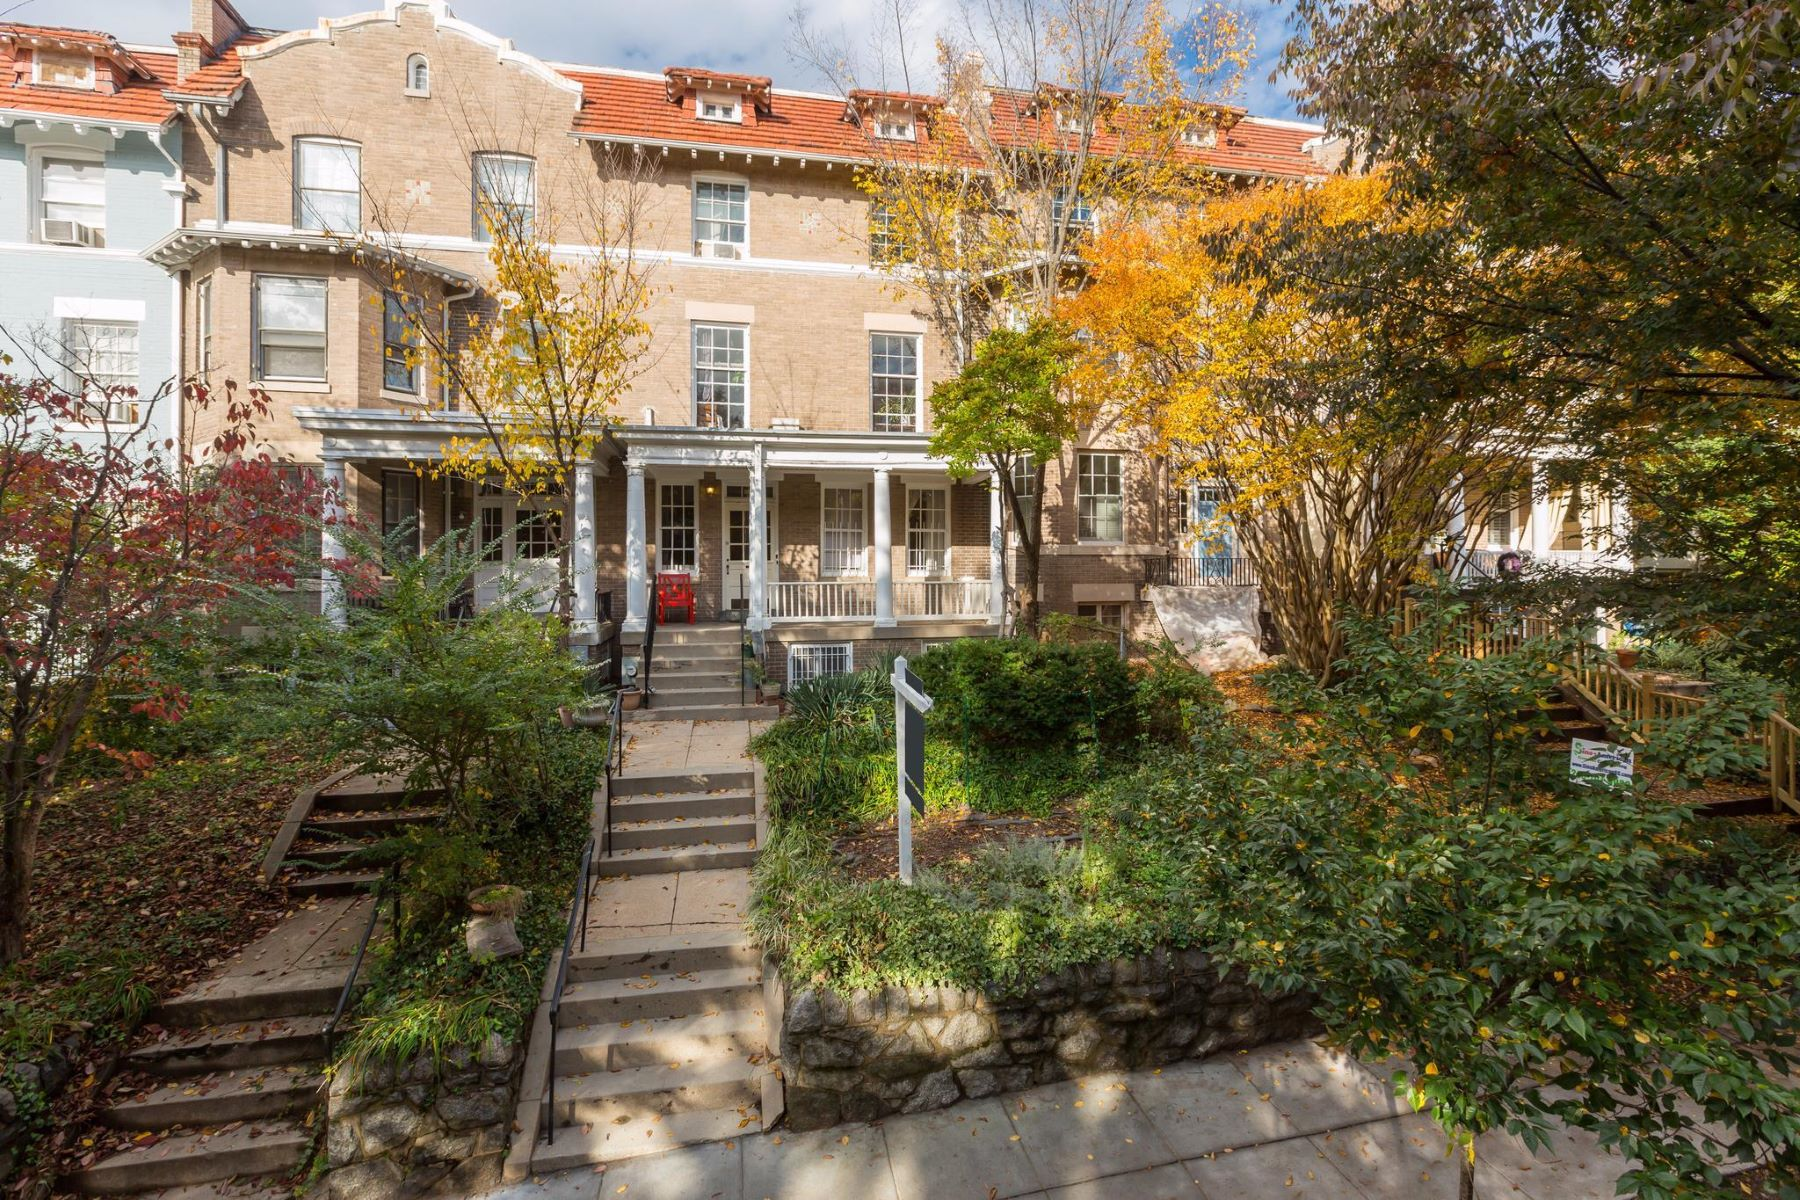 Additional photo for property listing at 1835 Lamont St Nw 1835 Lamont St Nw Washington, District Of Columbia 20010 United States